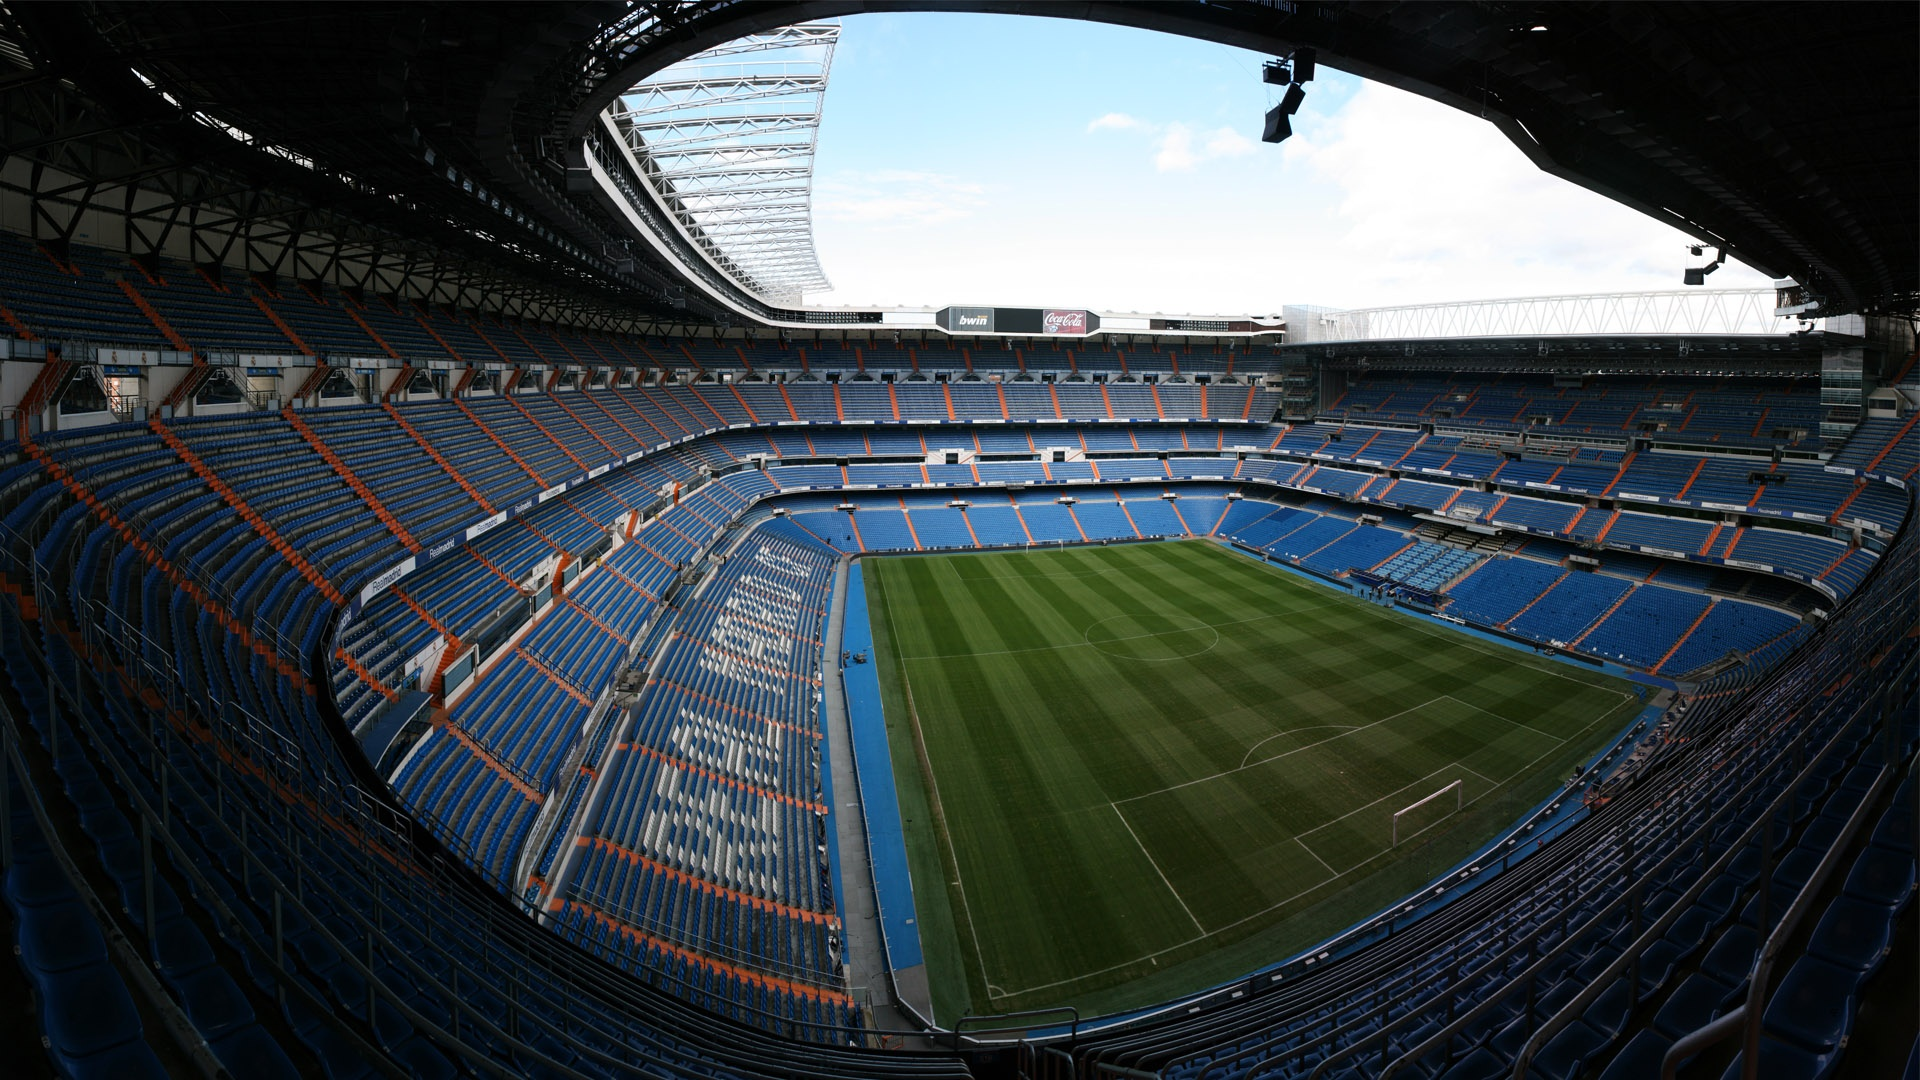 Free football wallpaper 1440x900 34816 for Puerta 4 santiago bernabeu